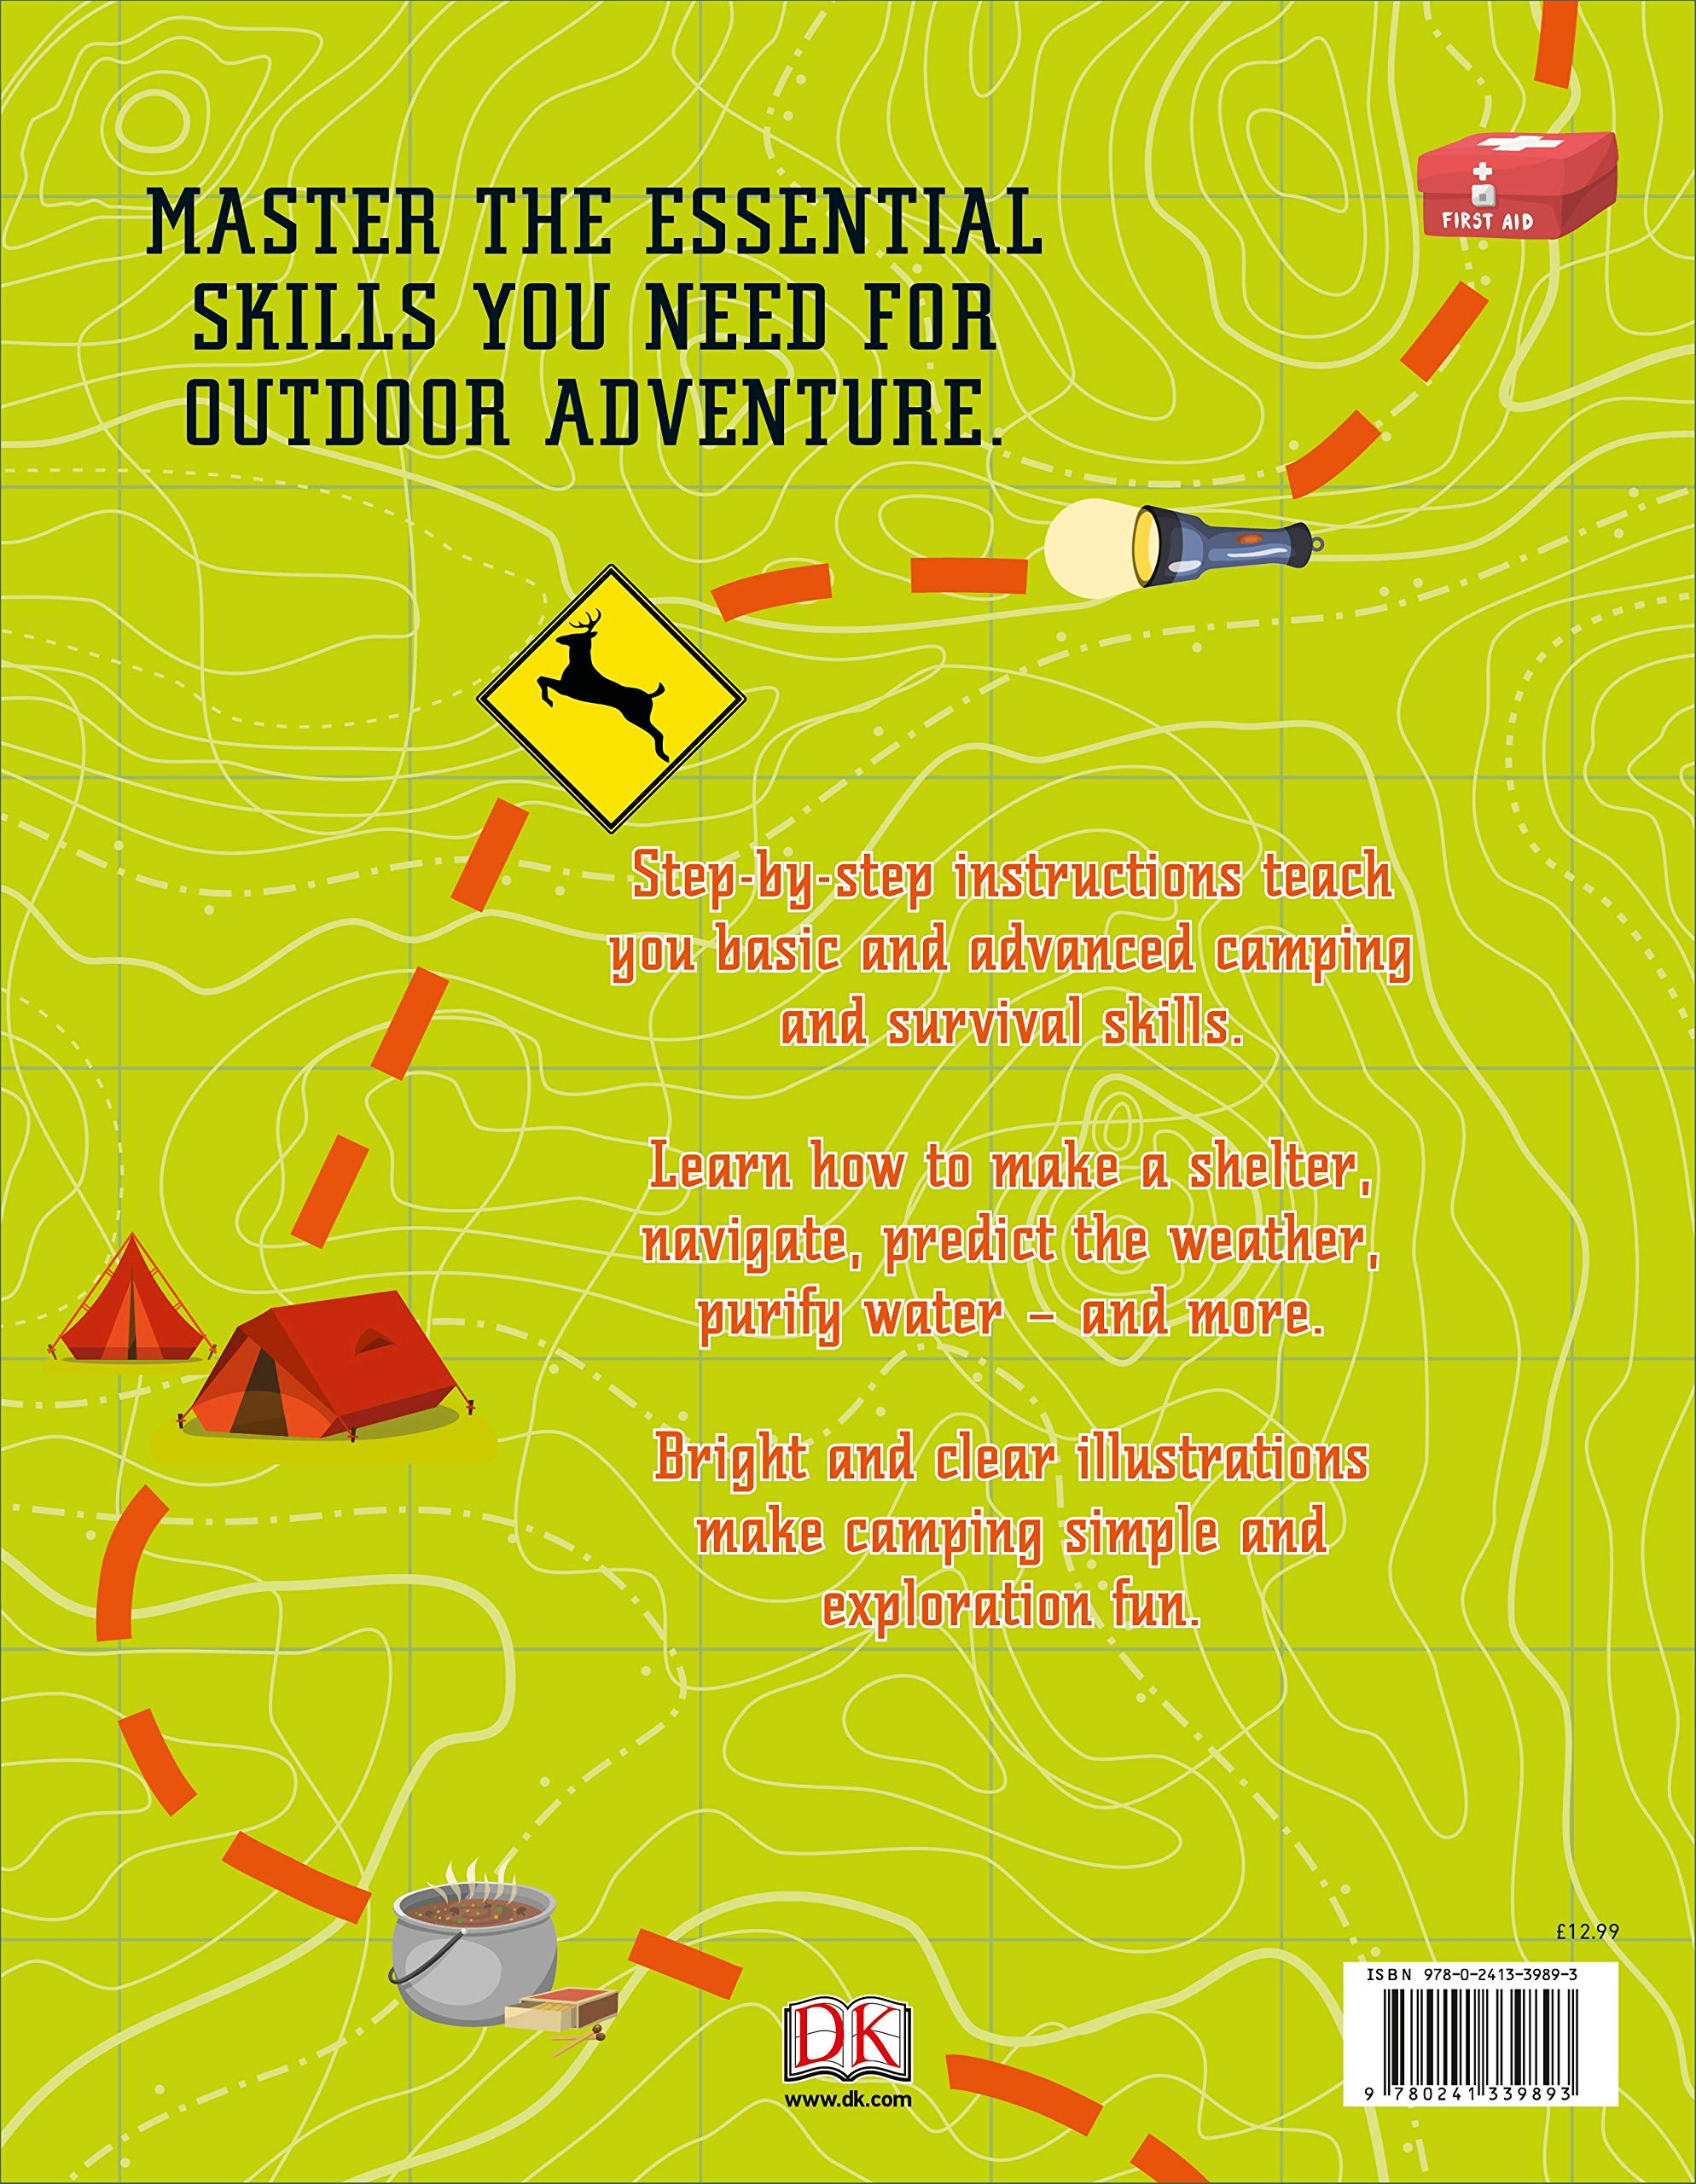 Survival for Beginners: A step-by-step guide to camping and outdoor skills